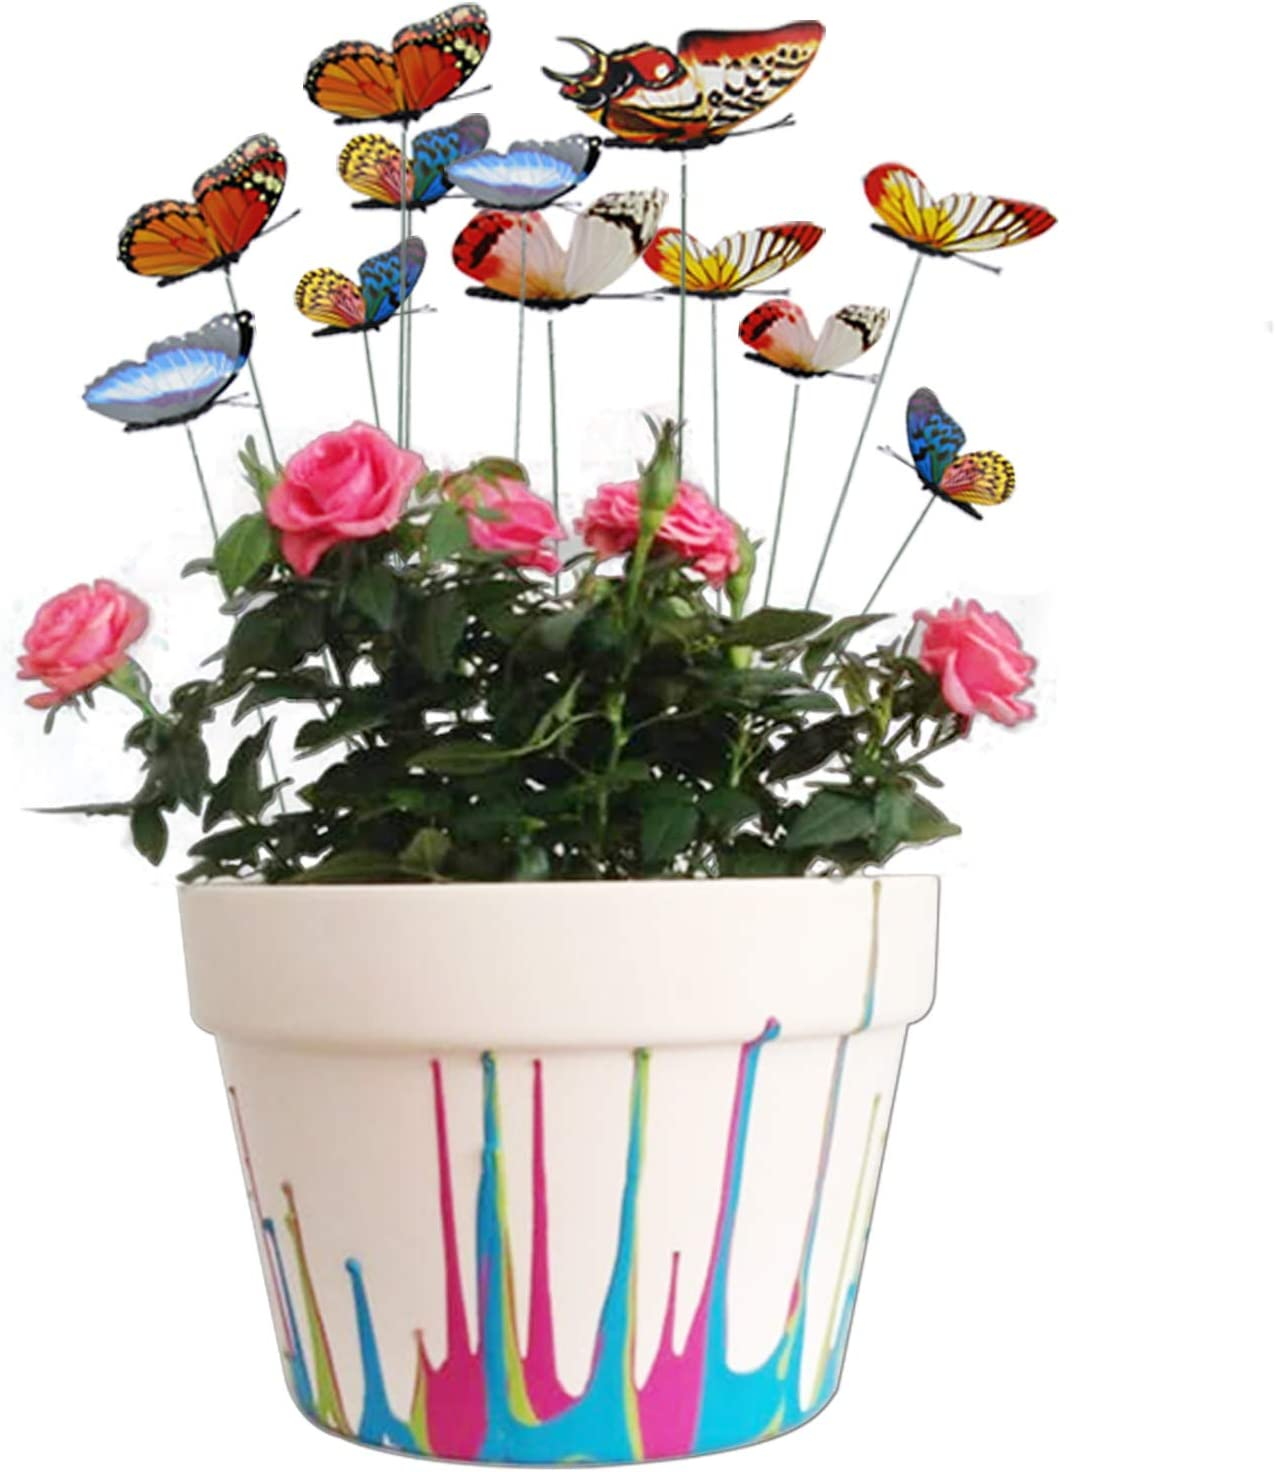 KEANVIK 25 Pcs Glowing Artificial Butterfly Decorative Garden Stakes for Outdoor Yard, Patio Plant Pot, Lawn and Home Decorative (25 Pcs Glowing Butterfly Stakes)